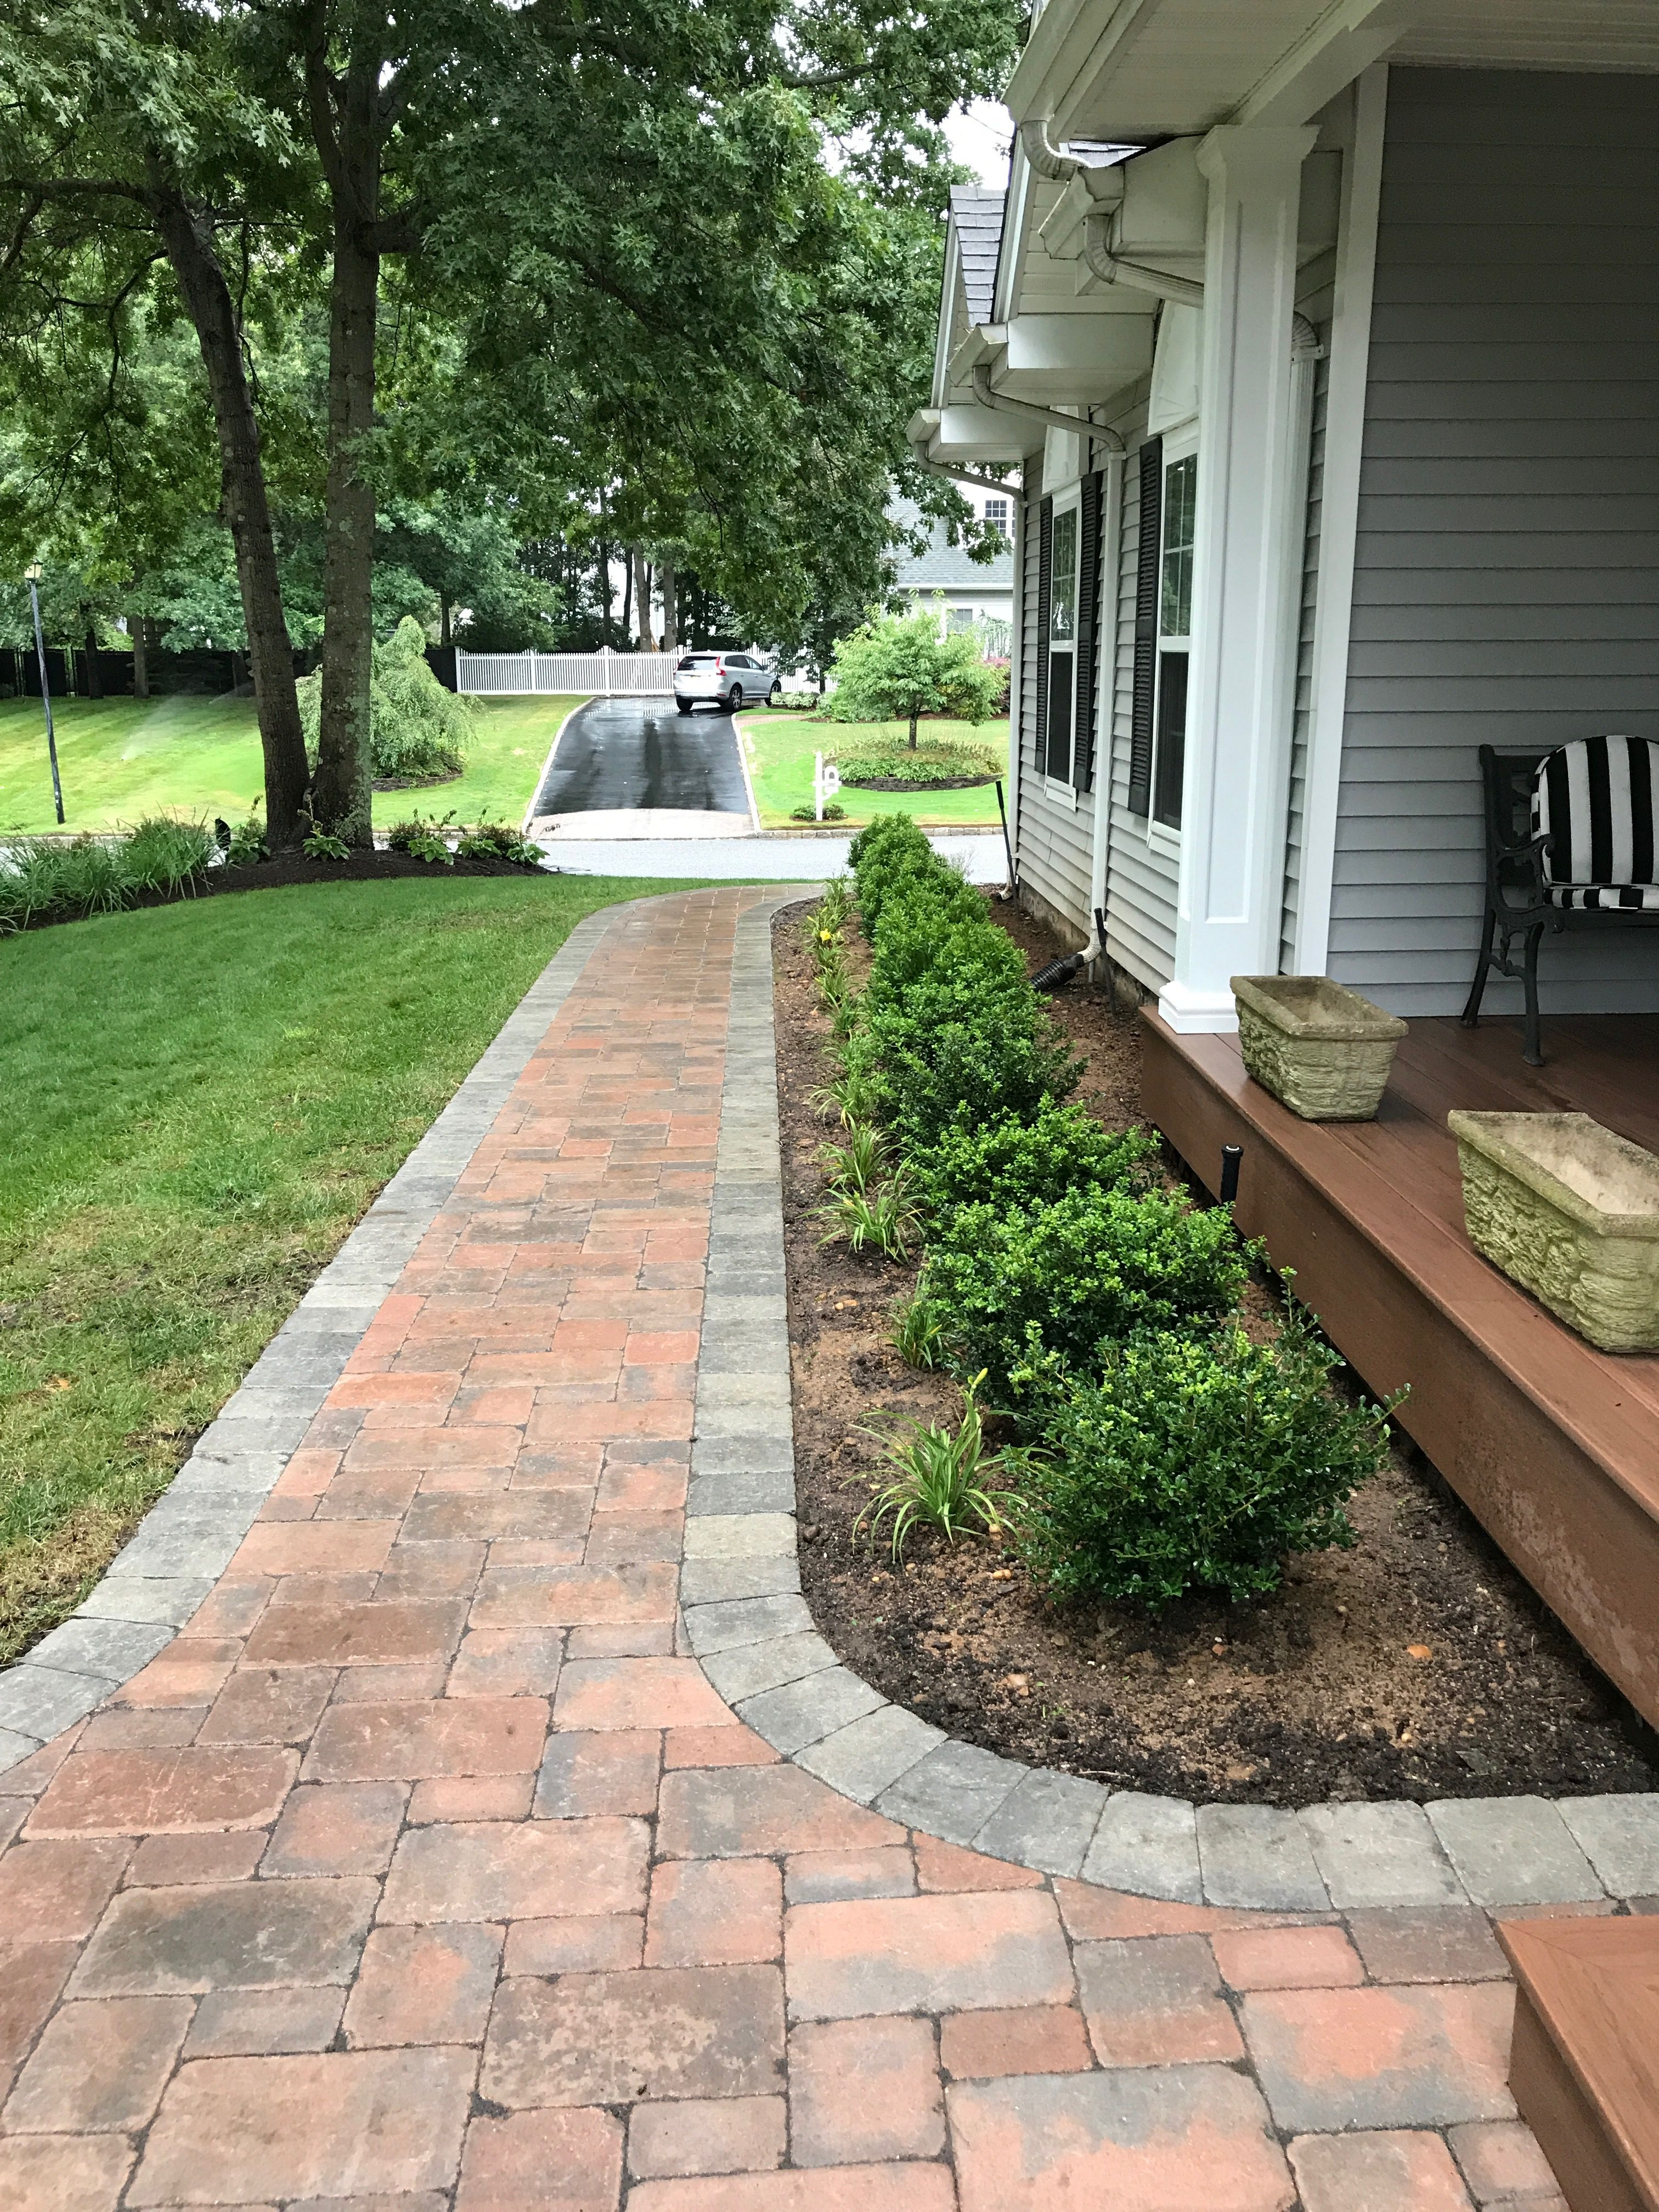 How To Get Great Grass Brick Exterior House Landscape Ideas Front Yard Ranch Red Brick House Exterior